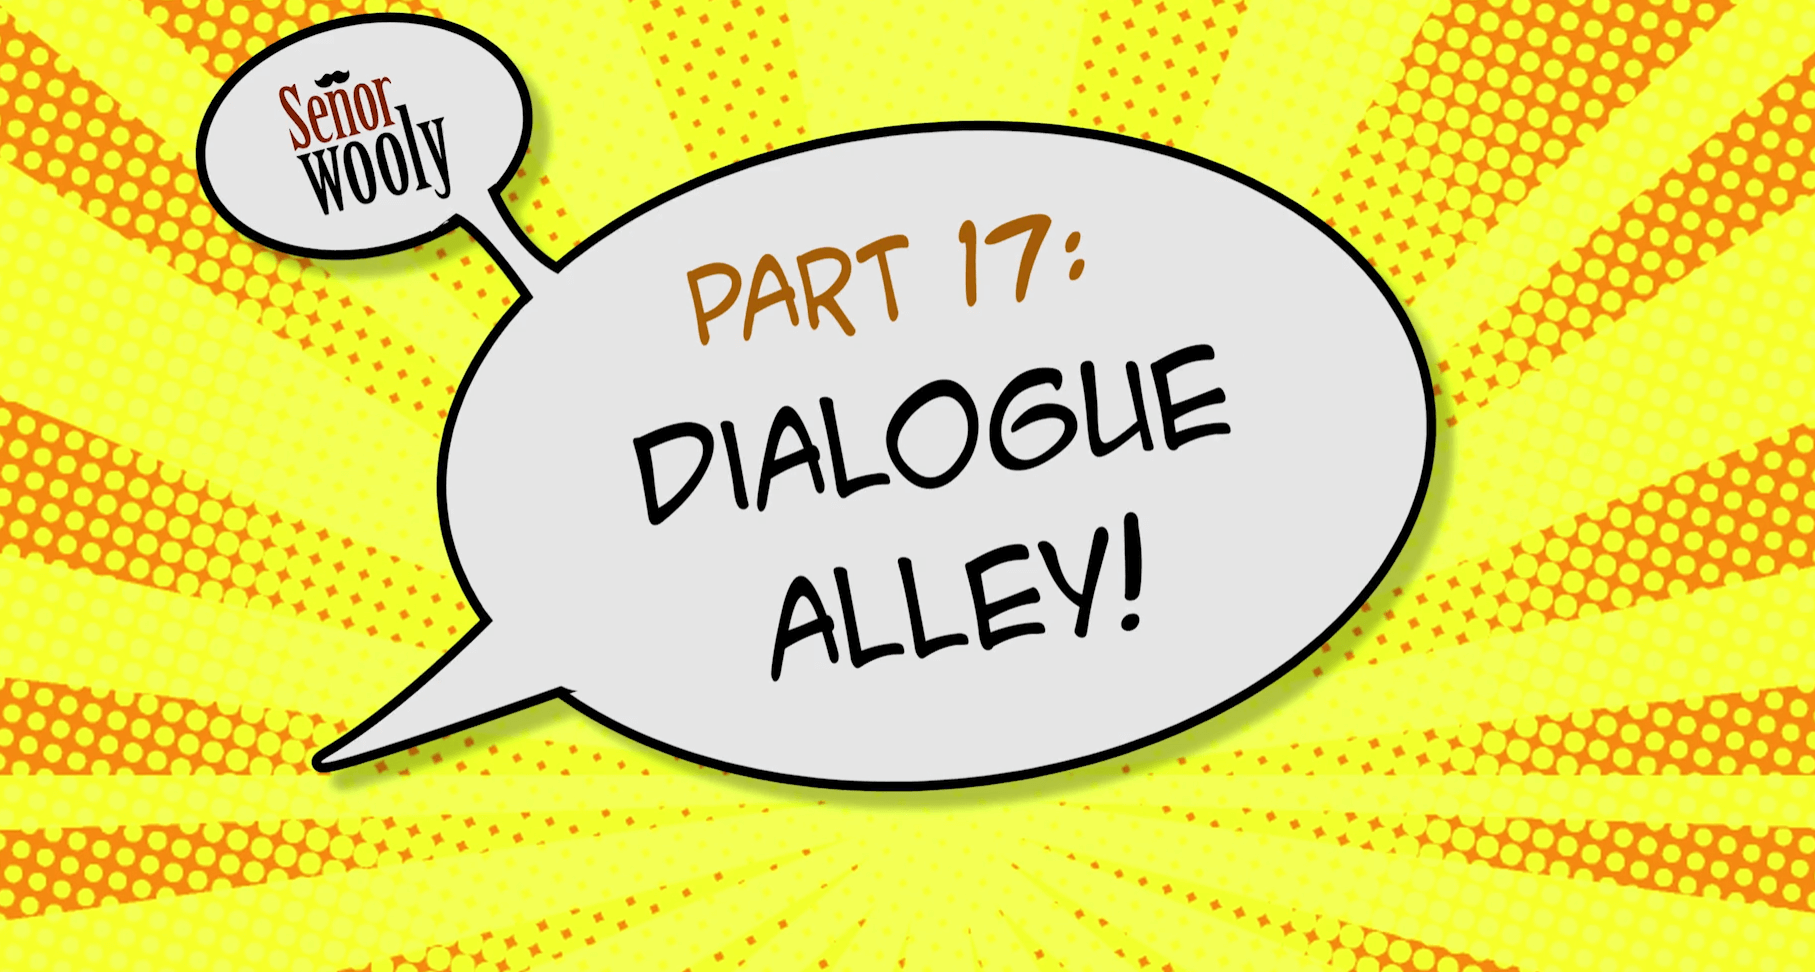 Part 17 - Dialogue Alley!